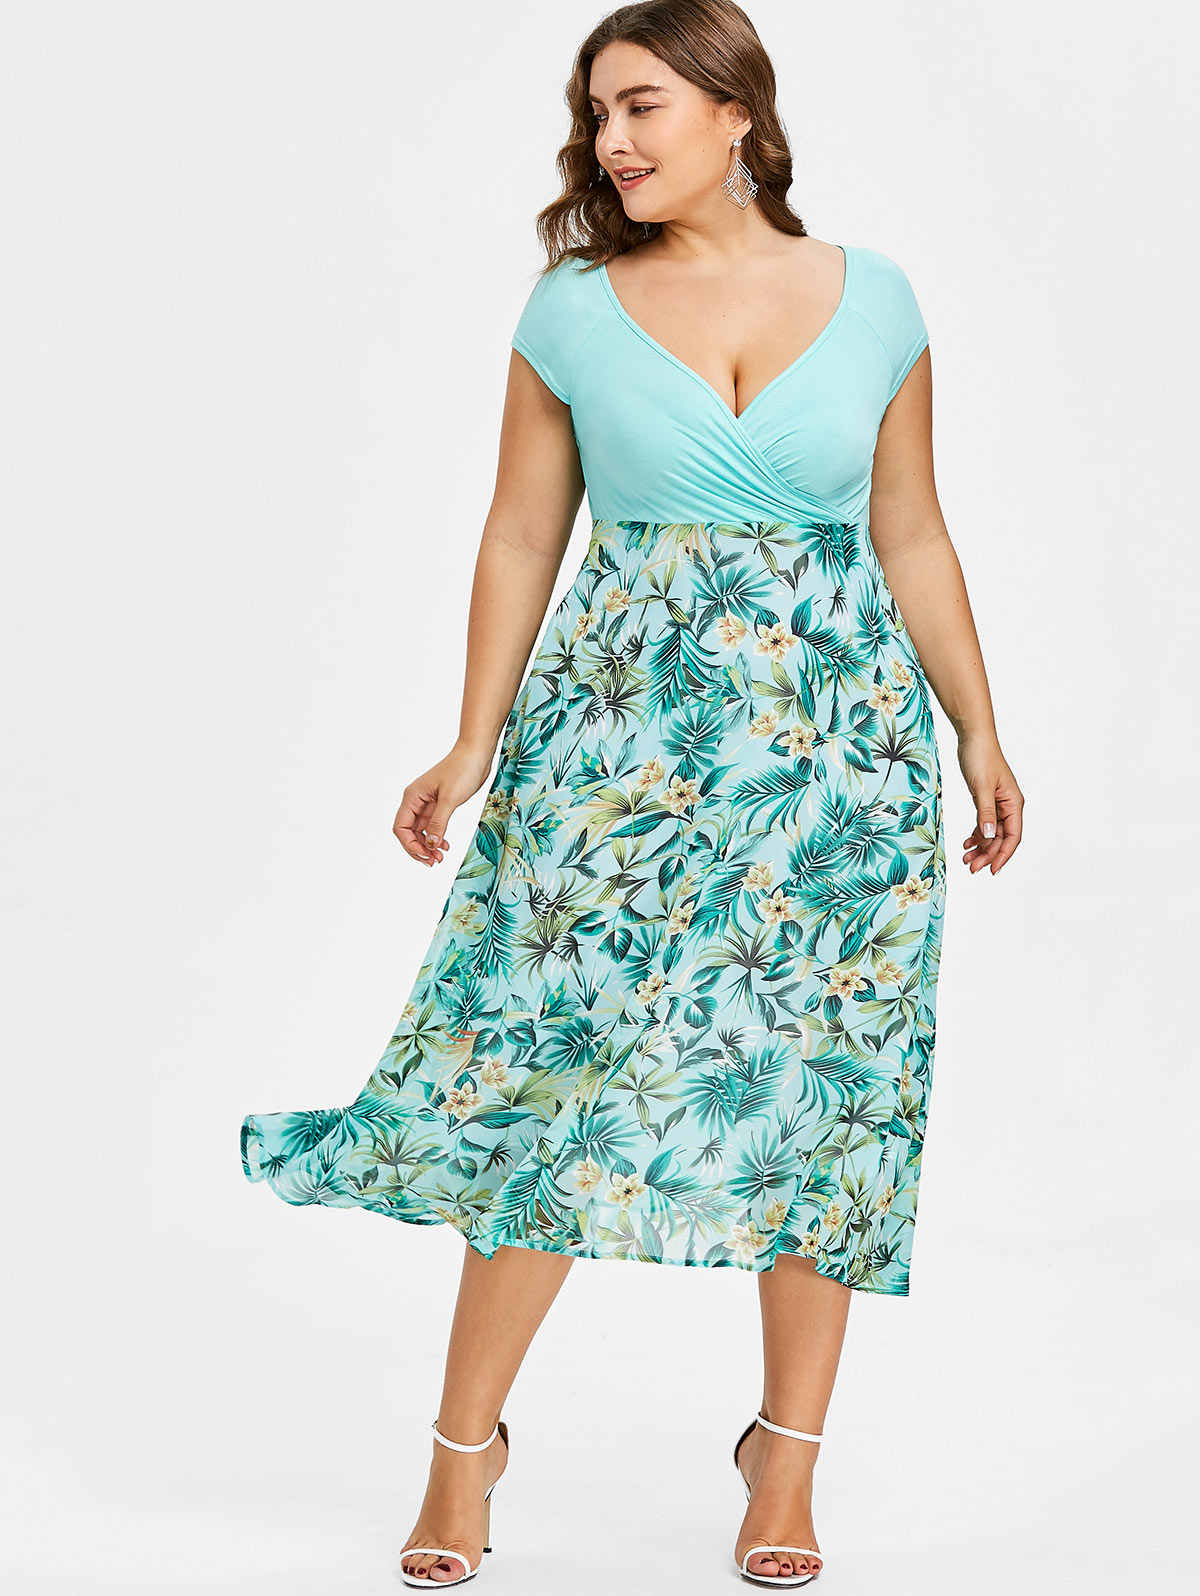 50940408db Gamiss Women Plus Size 5XL Tropical Floral Print V-Neck A-Line Midi Holiday